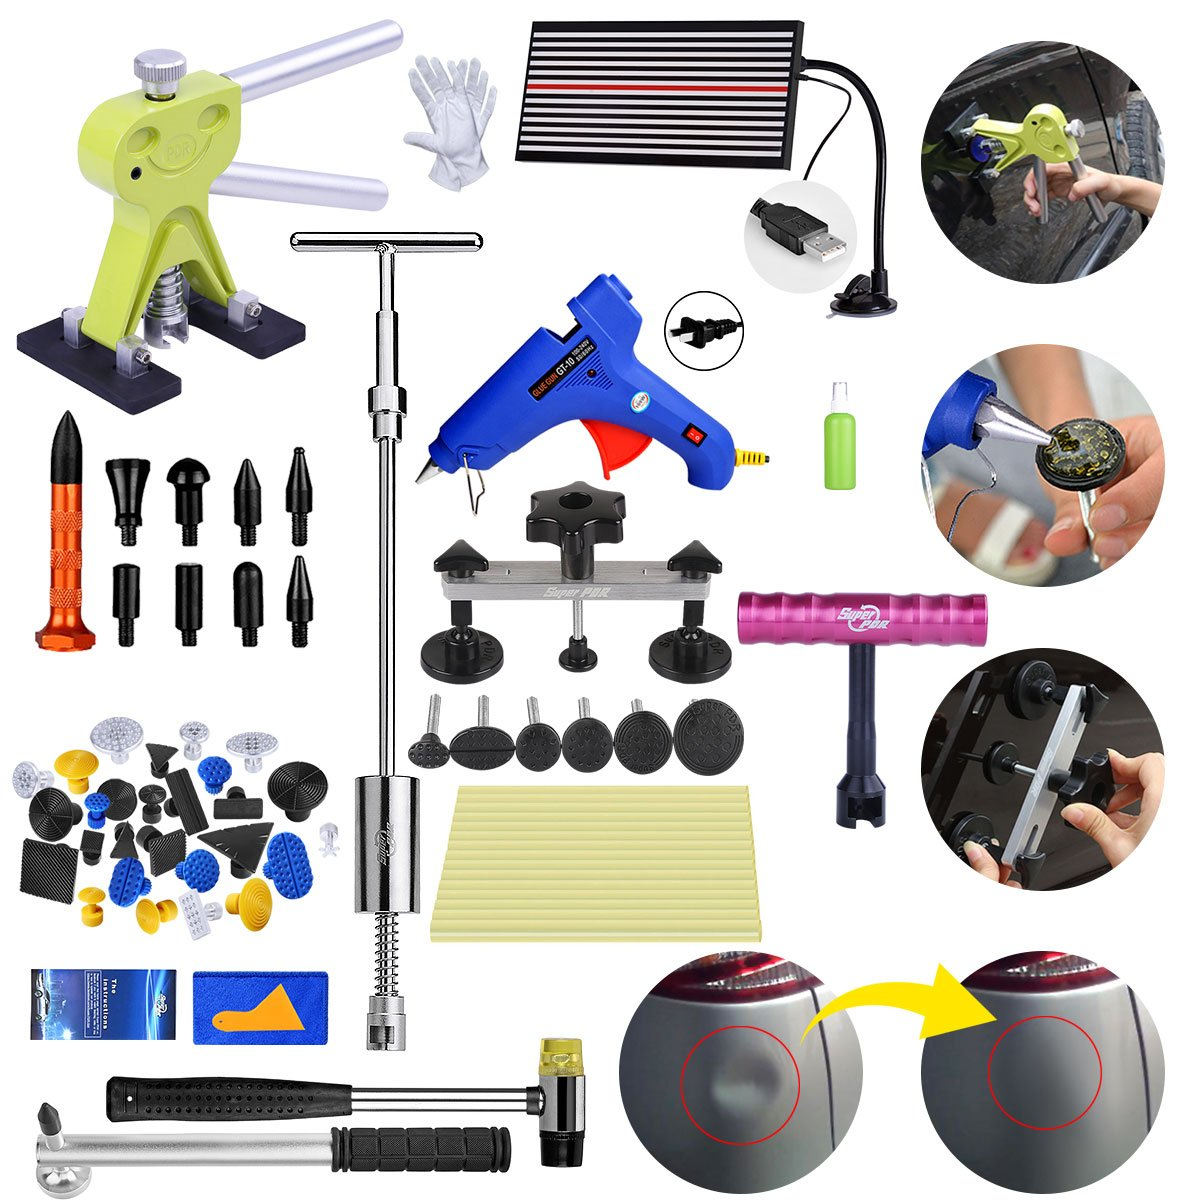 Fly5D 56pcs Repair Tools Kit Metal Glue Dent Puller Set